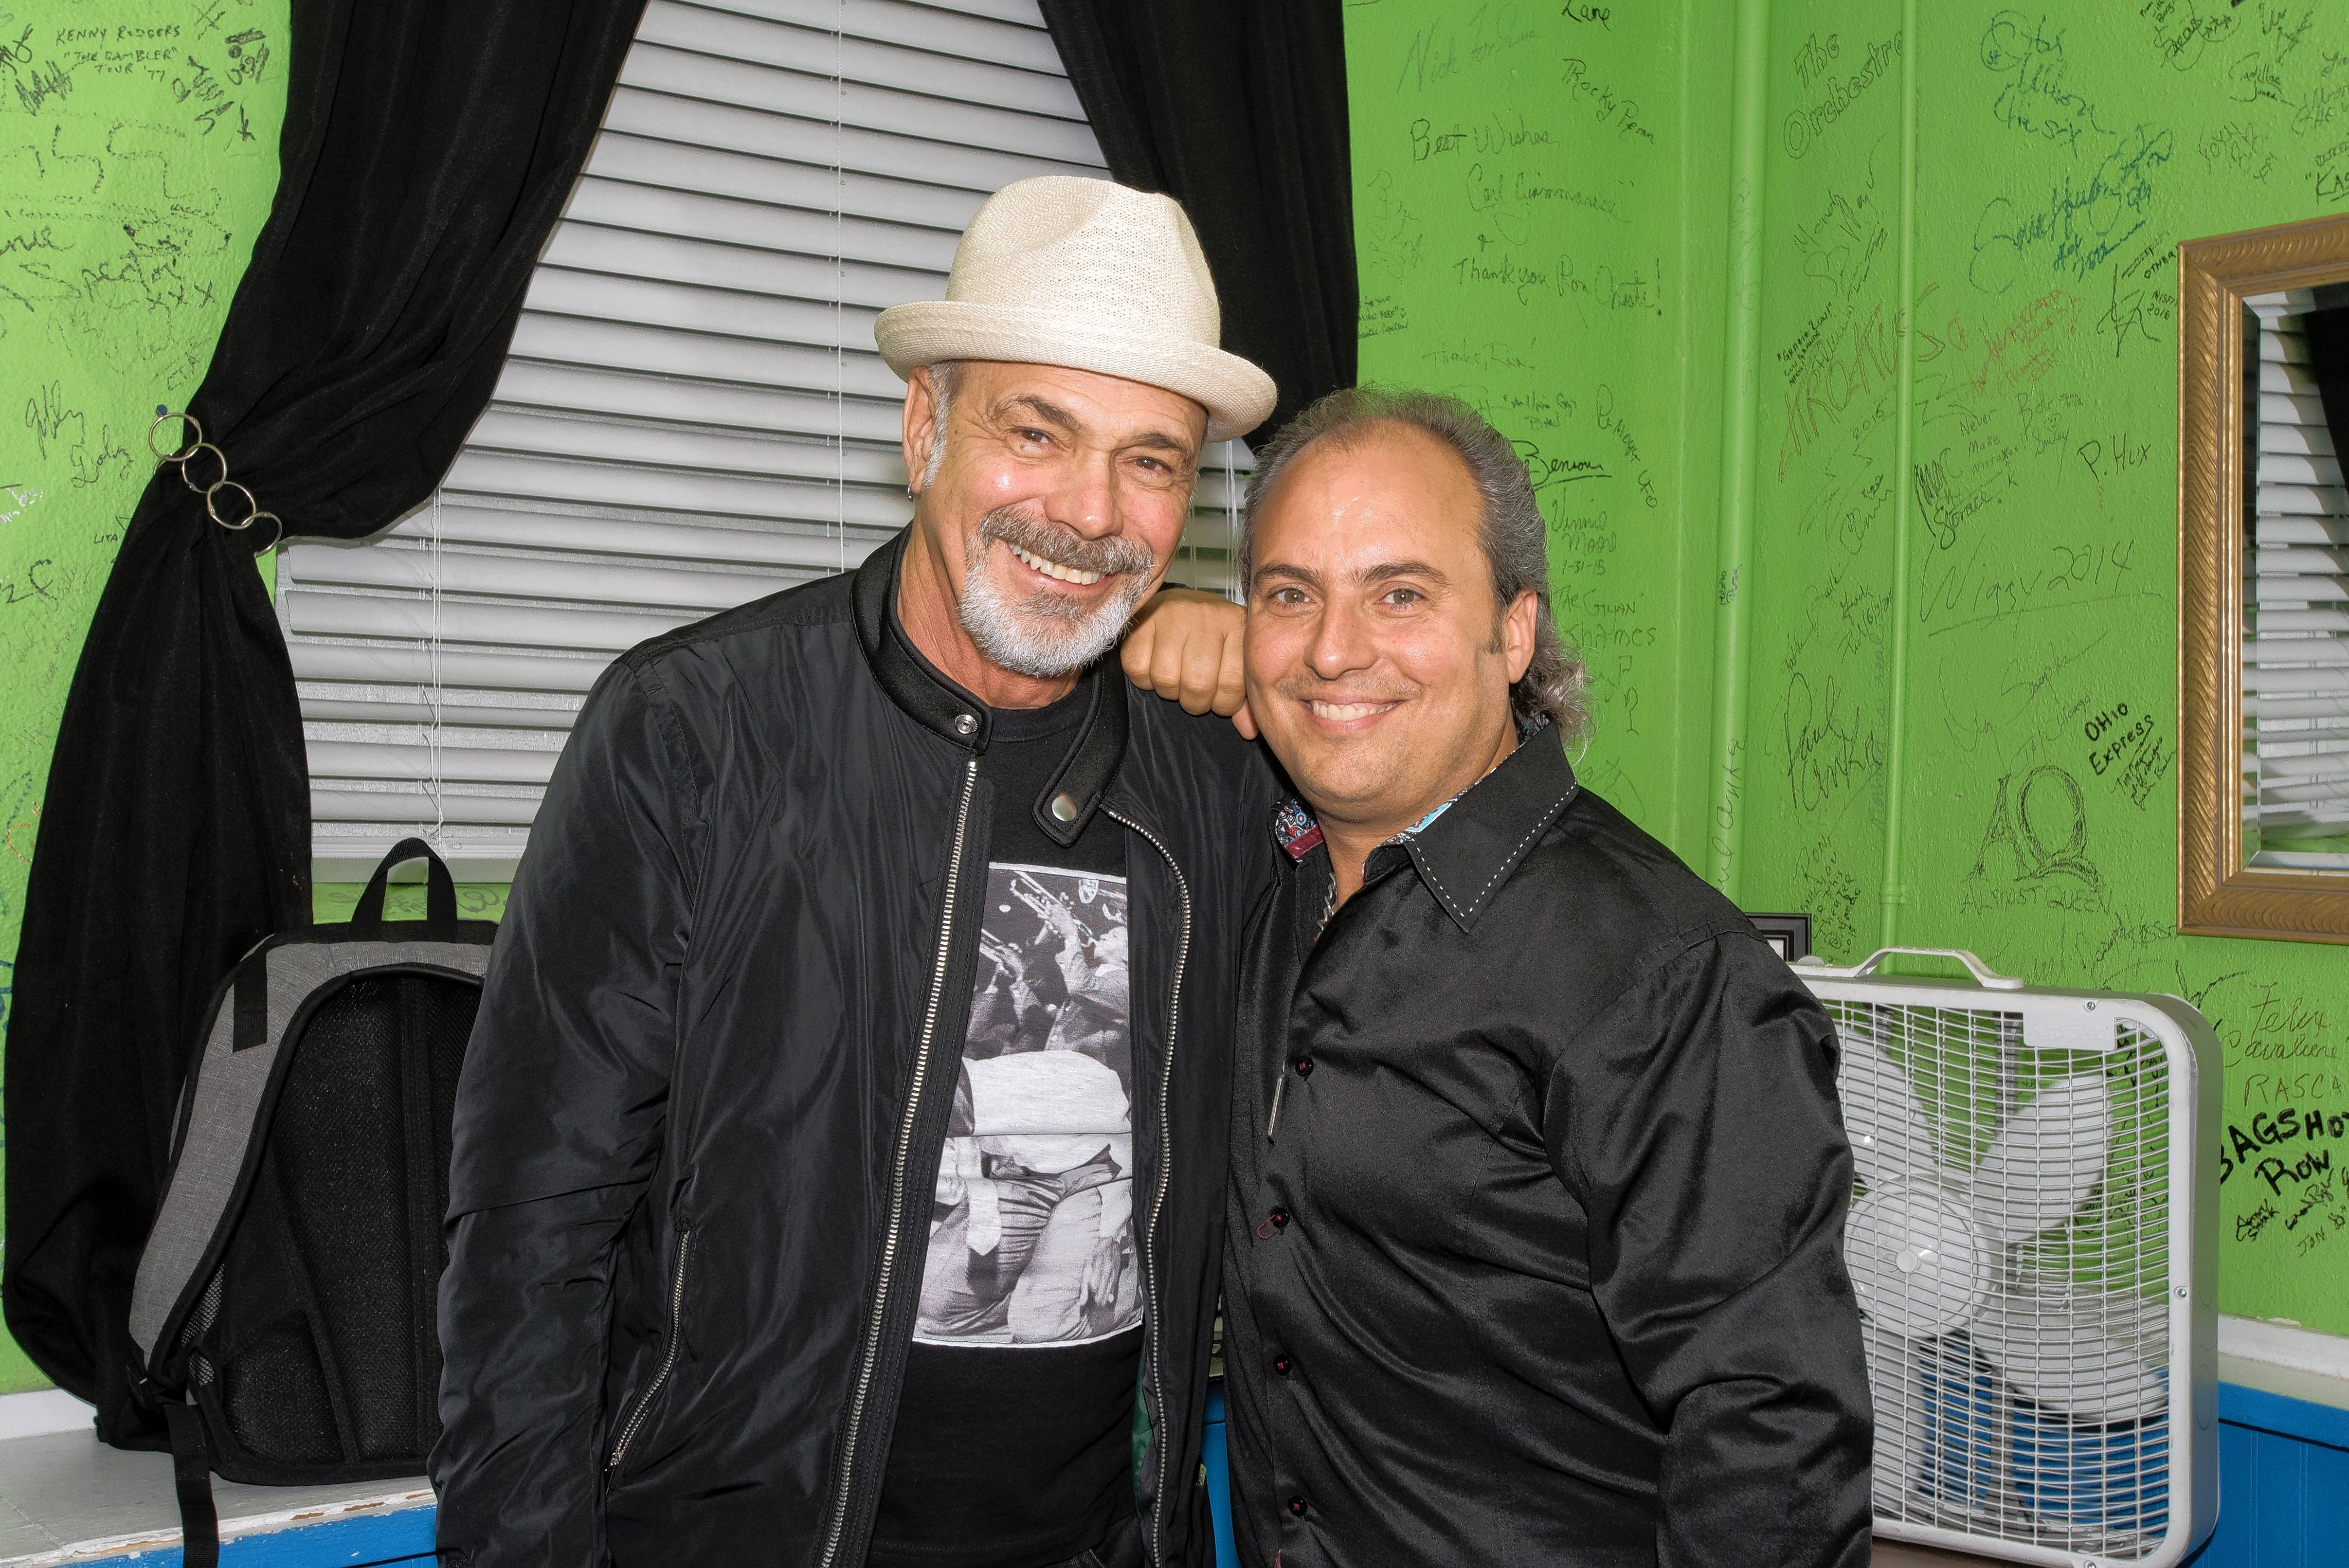 Danny Seraphine, left, original drummer of the band Chicago, and fellow Chicago musicians recently joined Ron Onesti at the Arcada Theatre in St. Charles for a Chicago-style rock concert.